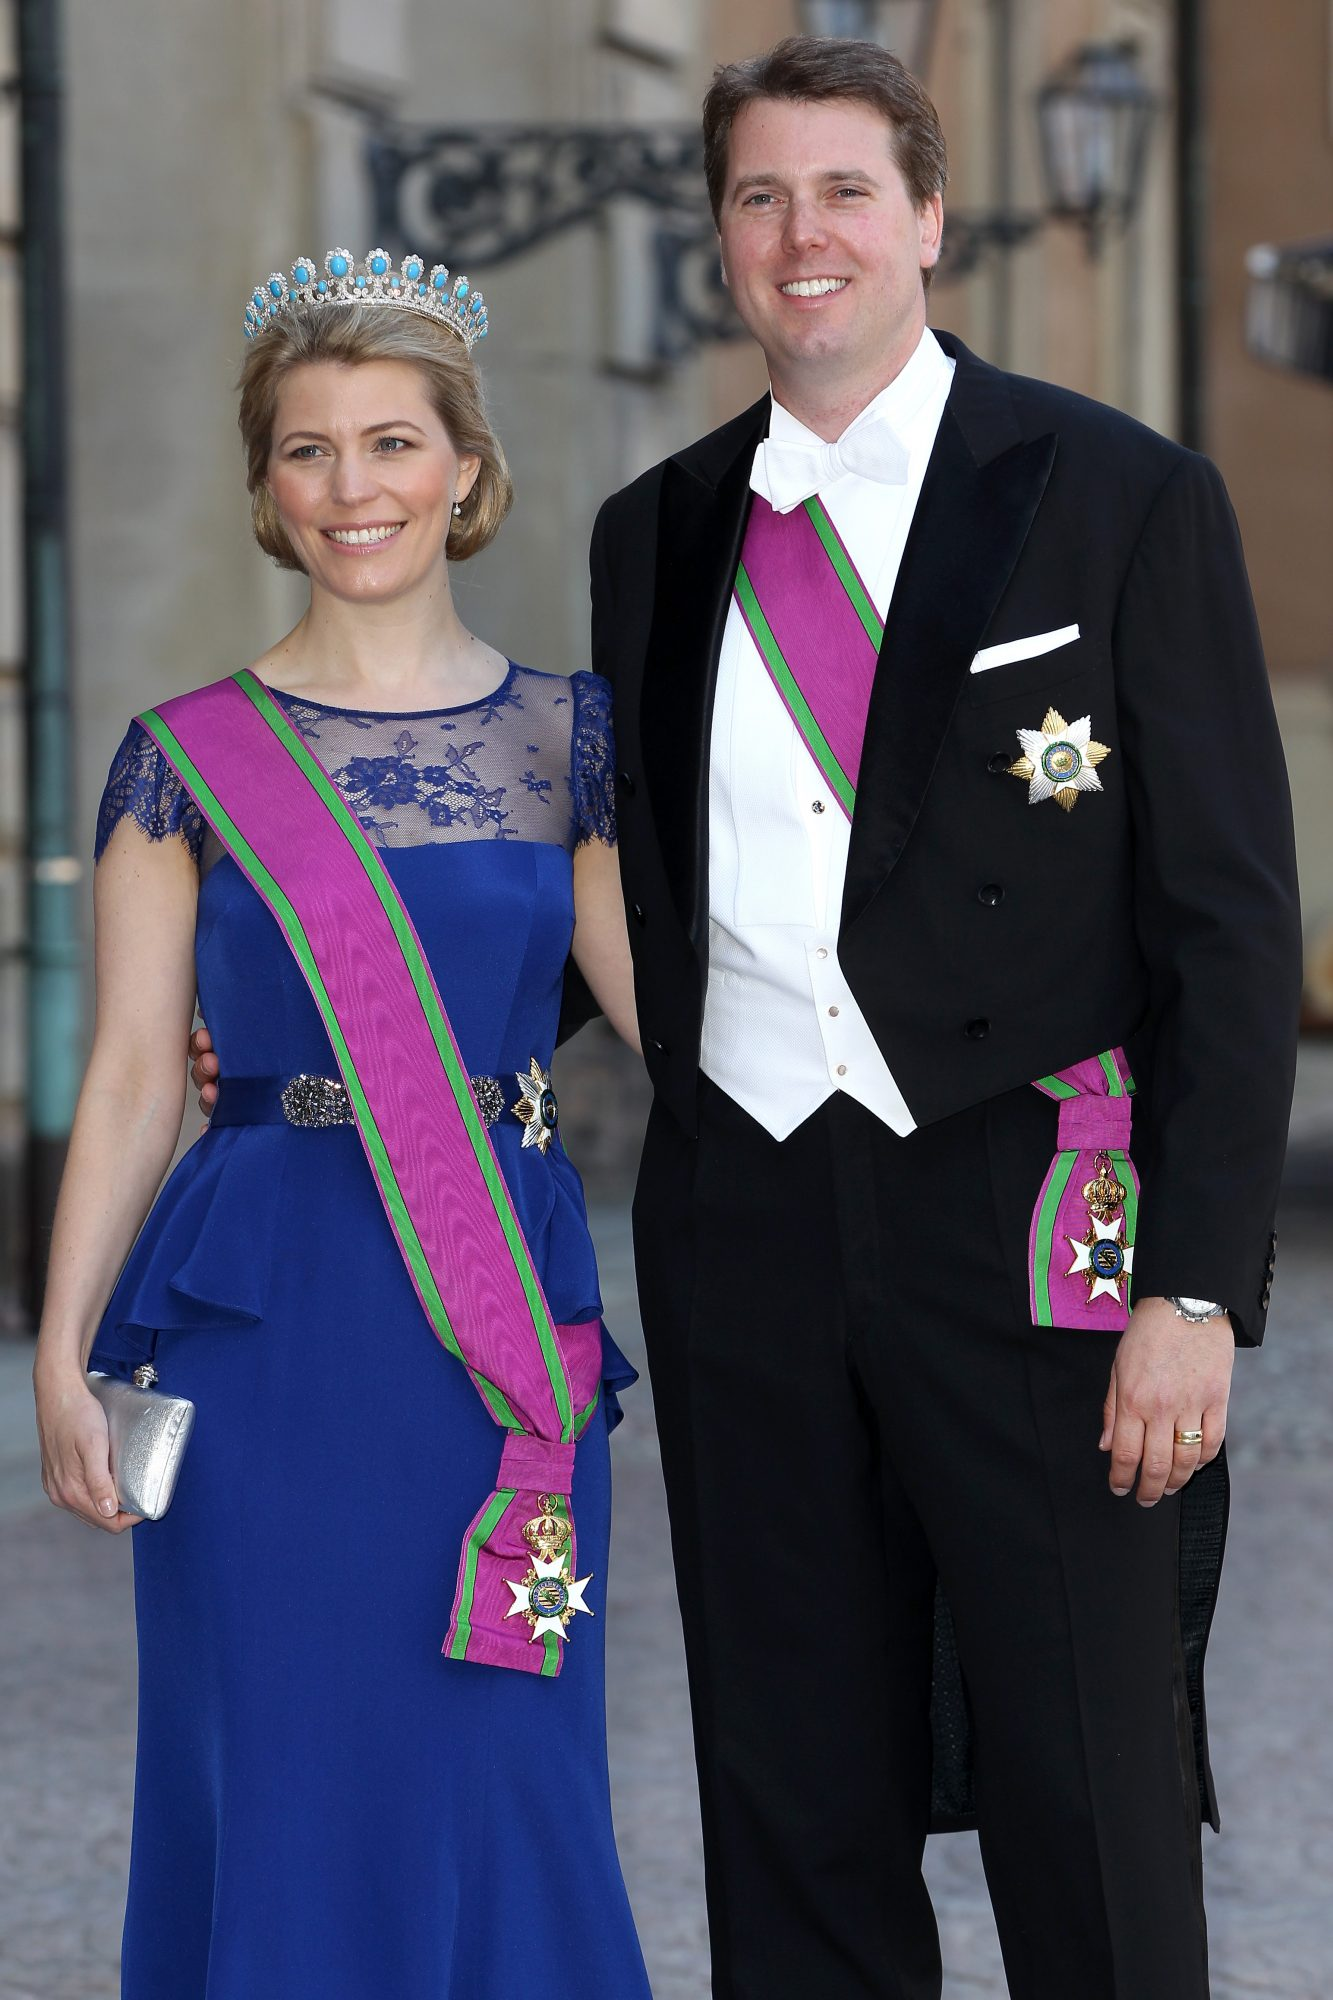 Princess Kelly and Prince Hubertus of Saxe-Coburg and Gotha